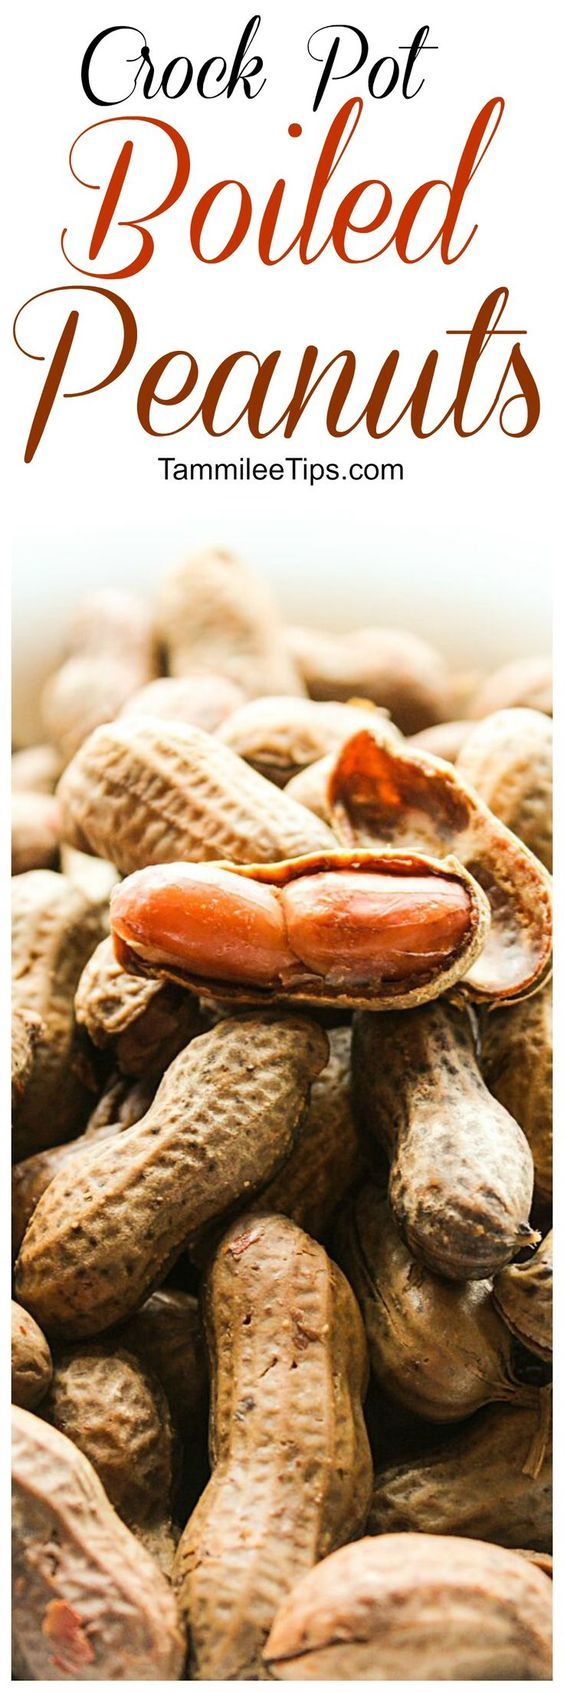 How to make Spicy Crock Pot Cajun Boiled Peanuts Recipe! This Southern slow cooker recipe is super easy to make and tastes amazing!